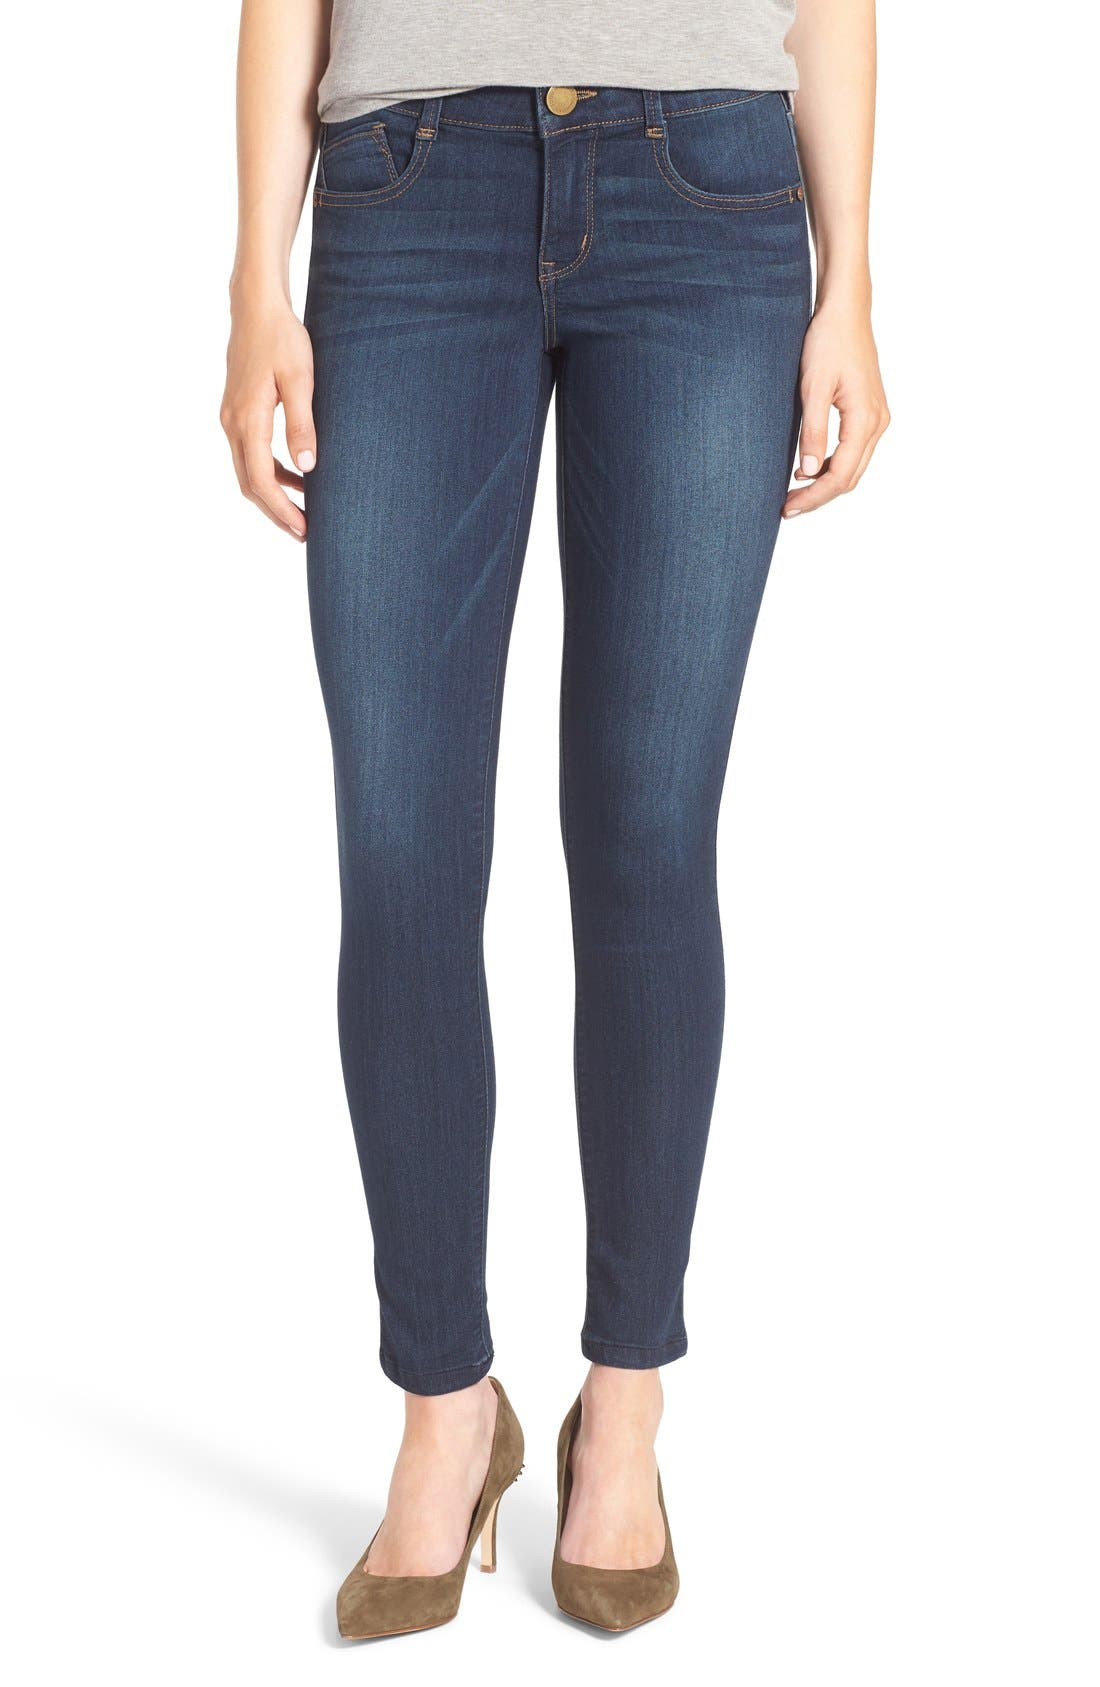 Alternate Image 1 Selected - Wit & Wisdom 'Ab-solution' Stretch Skinny Jeans (Nordstrom Exclusive)